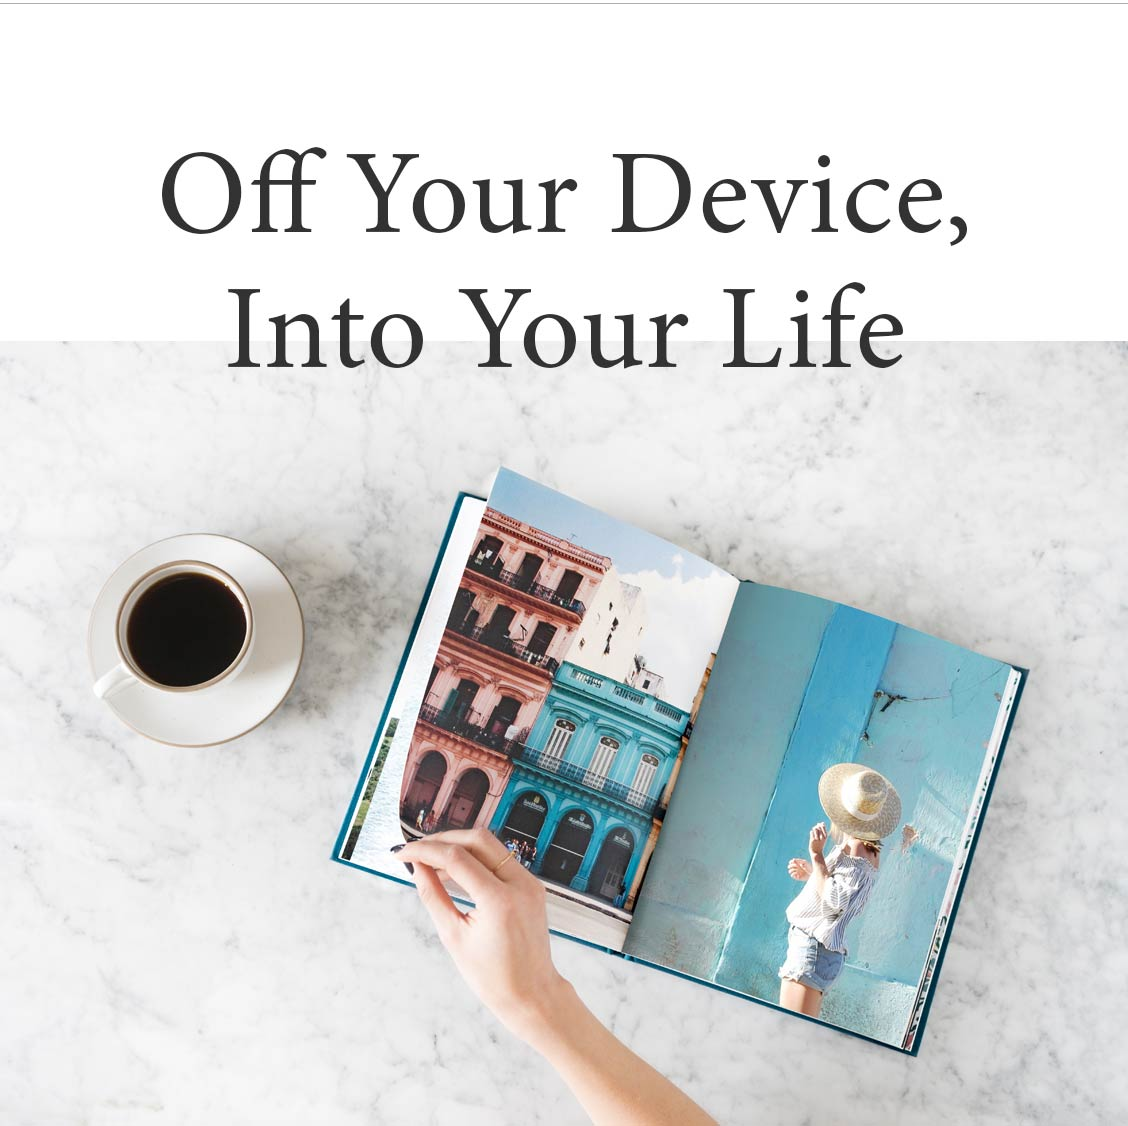 OFF YOUR DEVICE, INTO YOUR LIFE